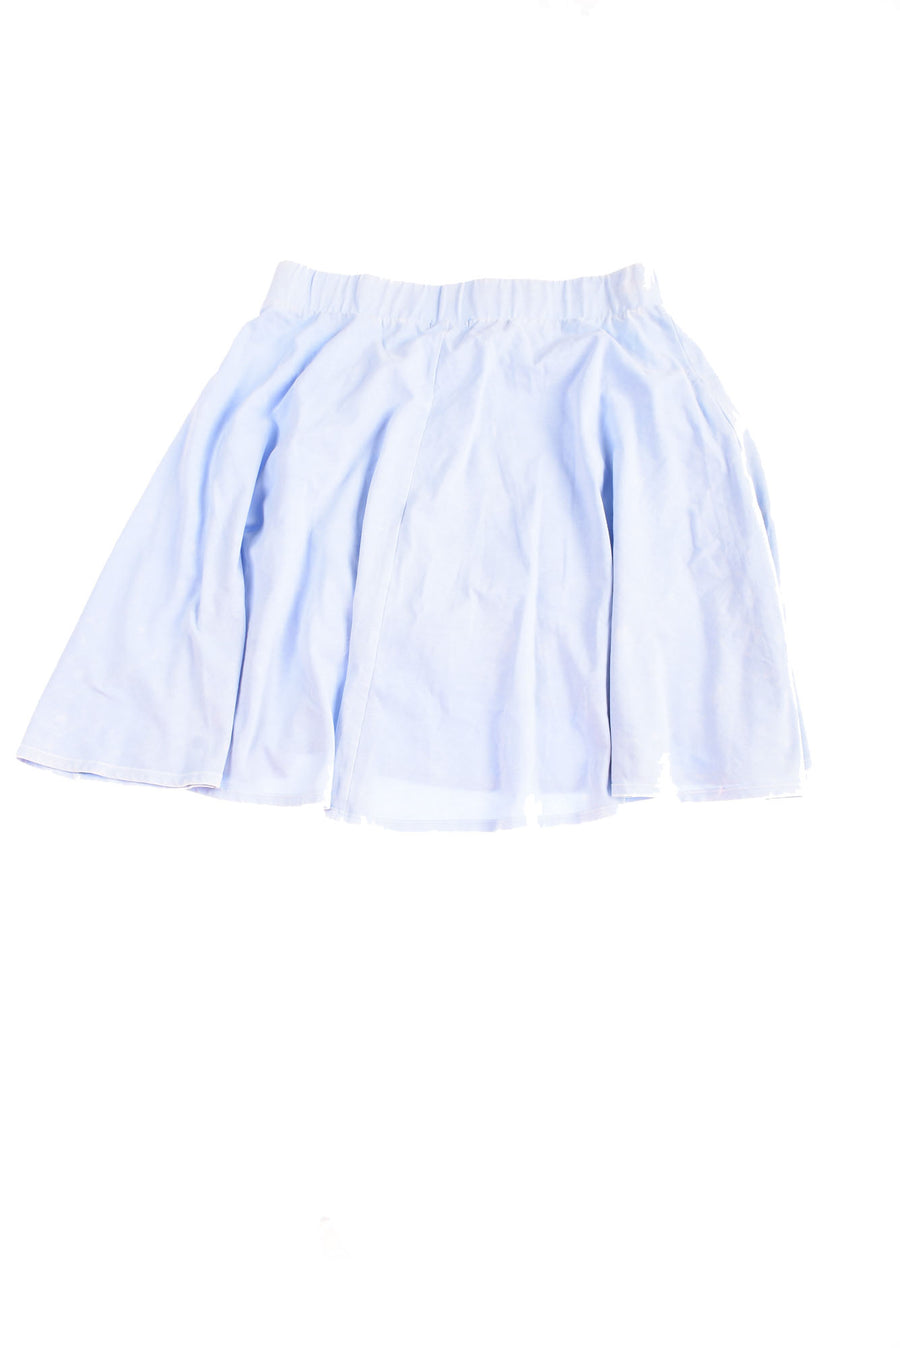 USED Torrid Women's Skirt 00 Powder Blue